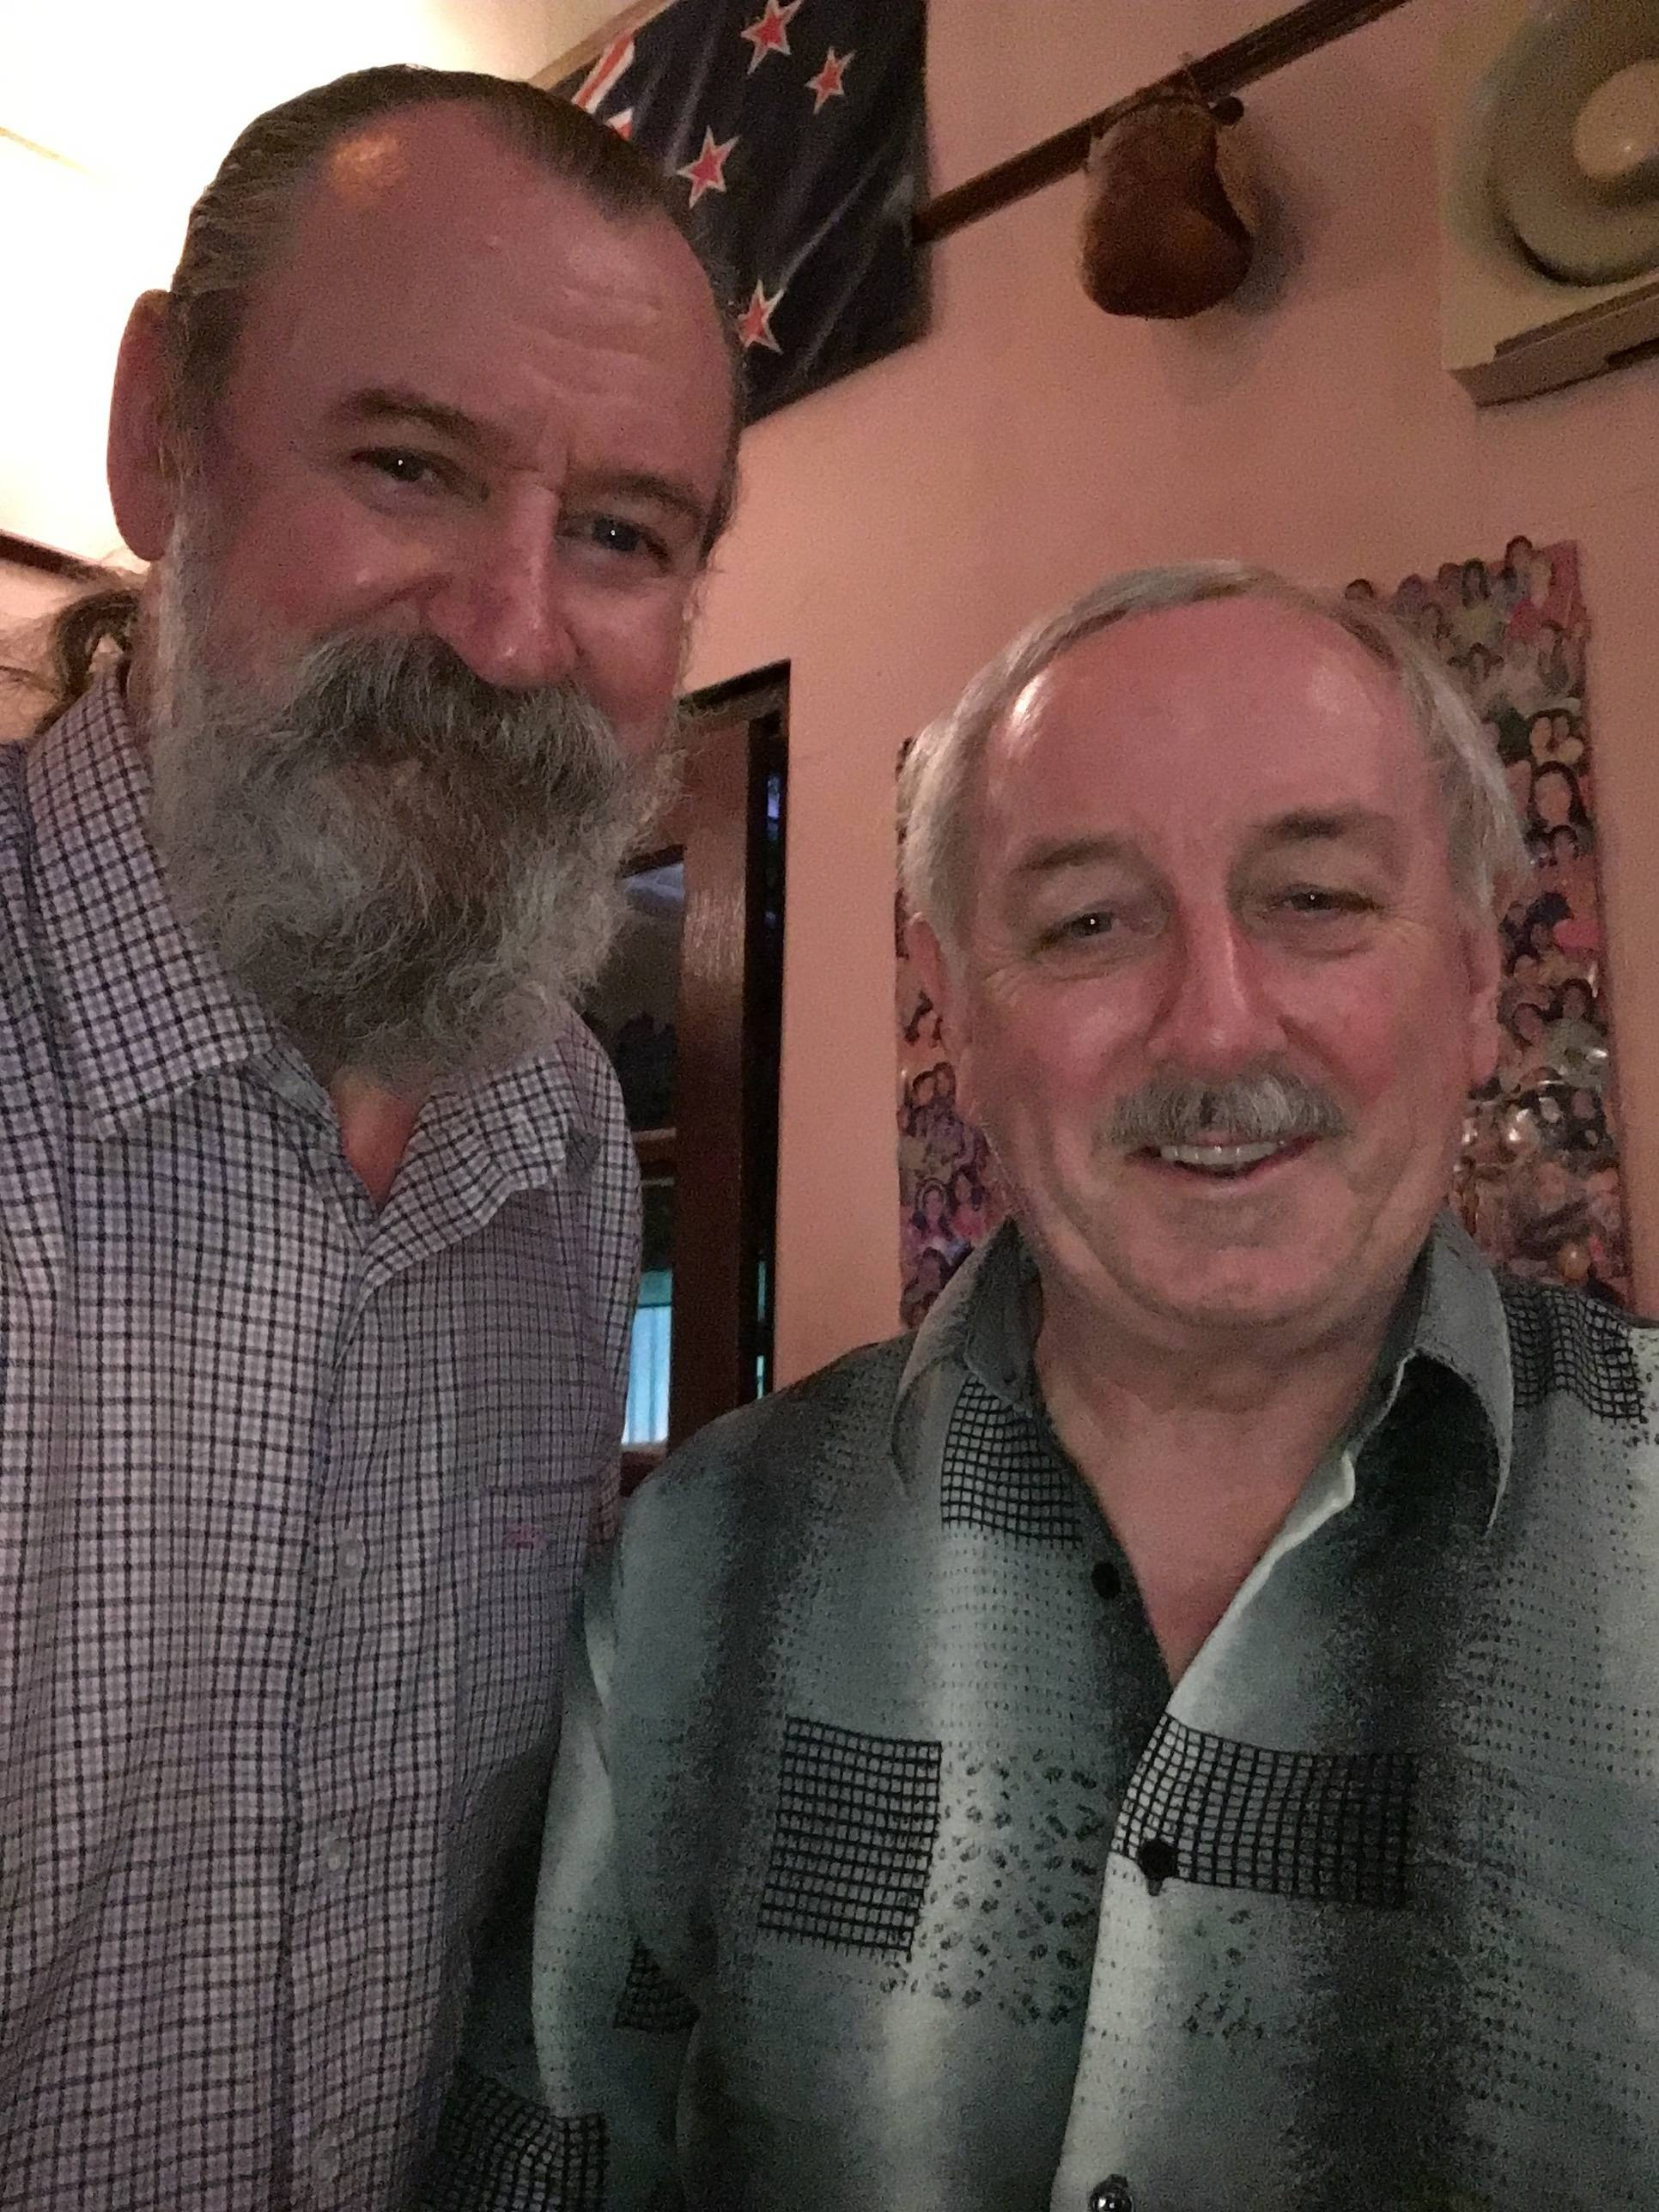 With well known Banjo Maker Tom Cussen of Clareen Banjo's in Galway.